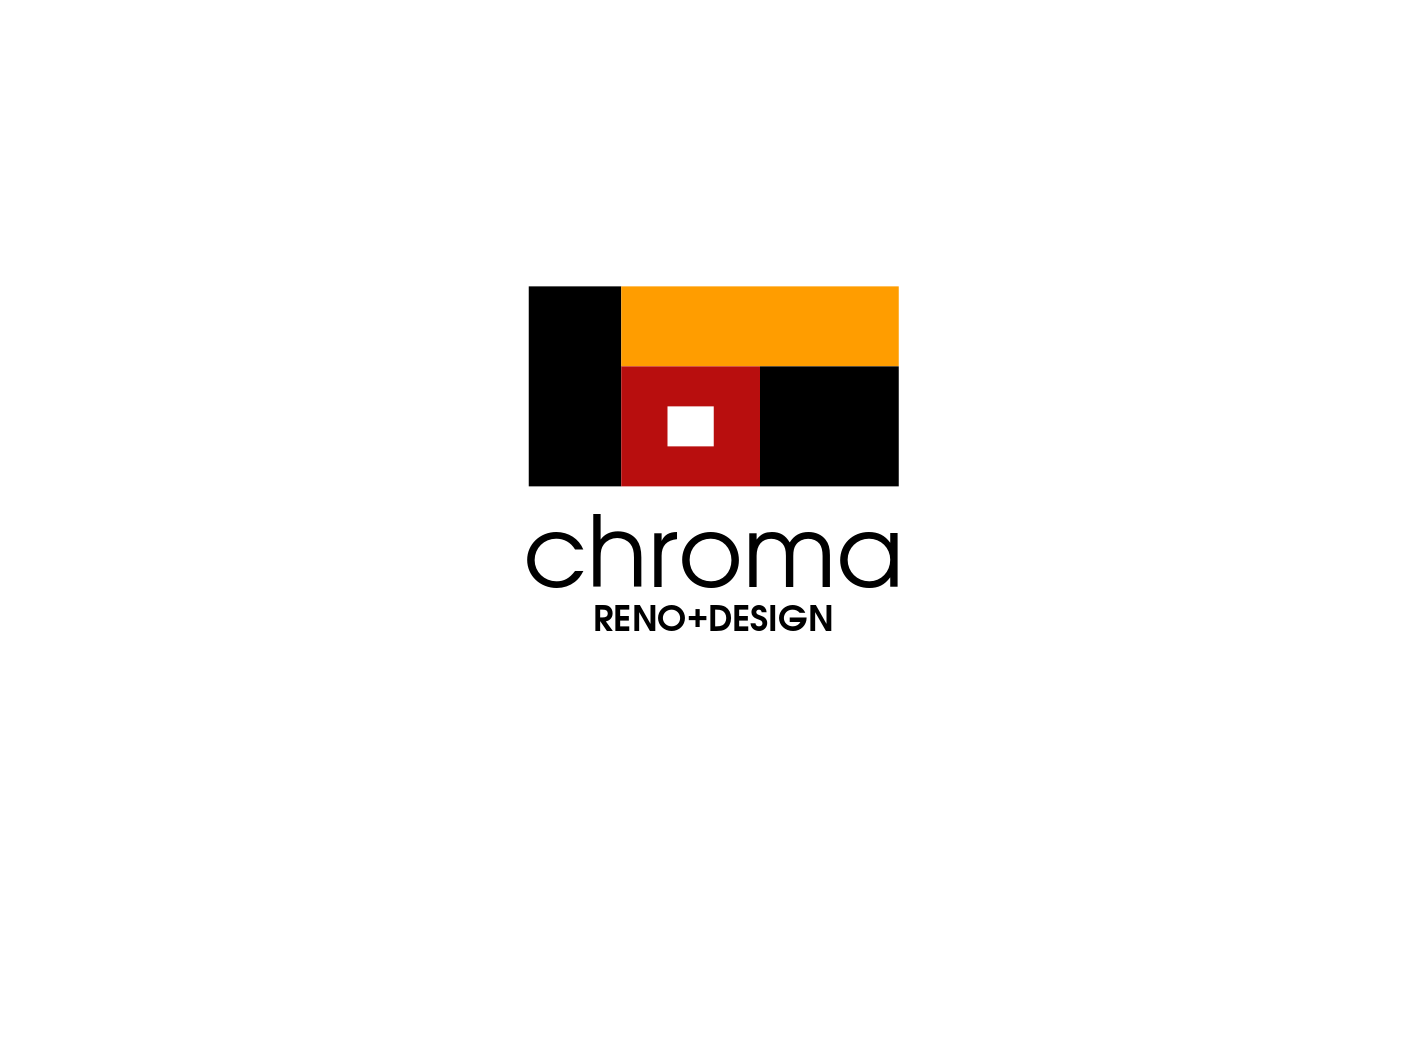 Logo Design by JaroslavProcka - Entry No. 213 in the Logo Design Contest Inspiring Logo Design for Chroma Reno+Design.